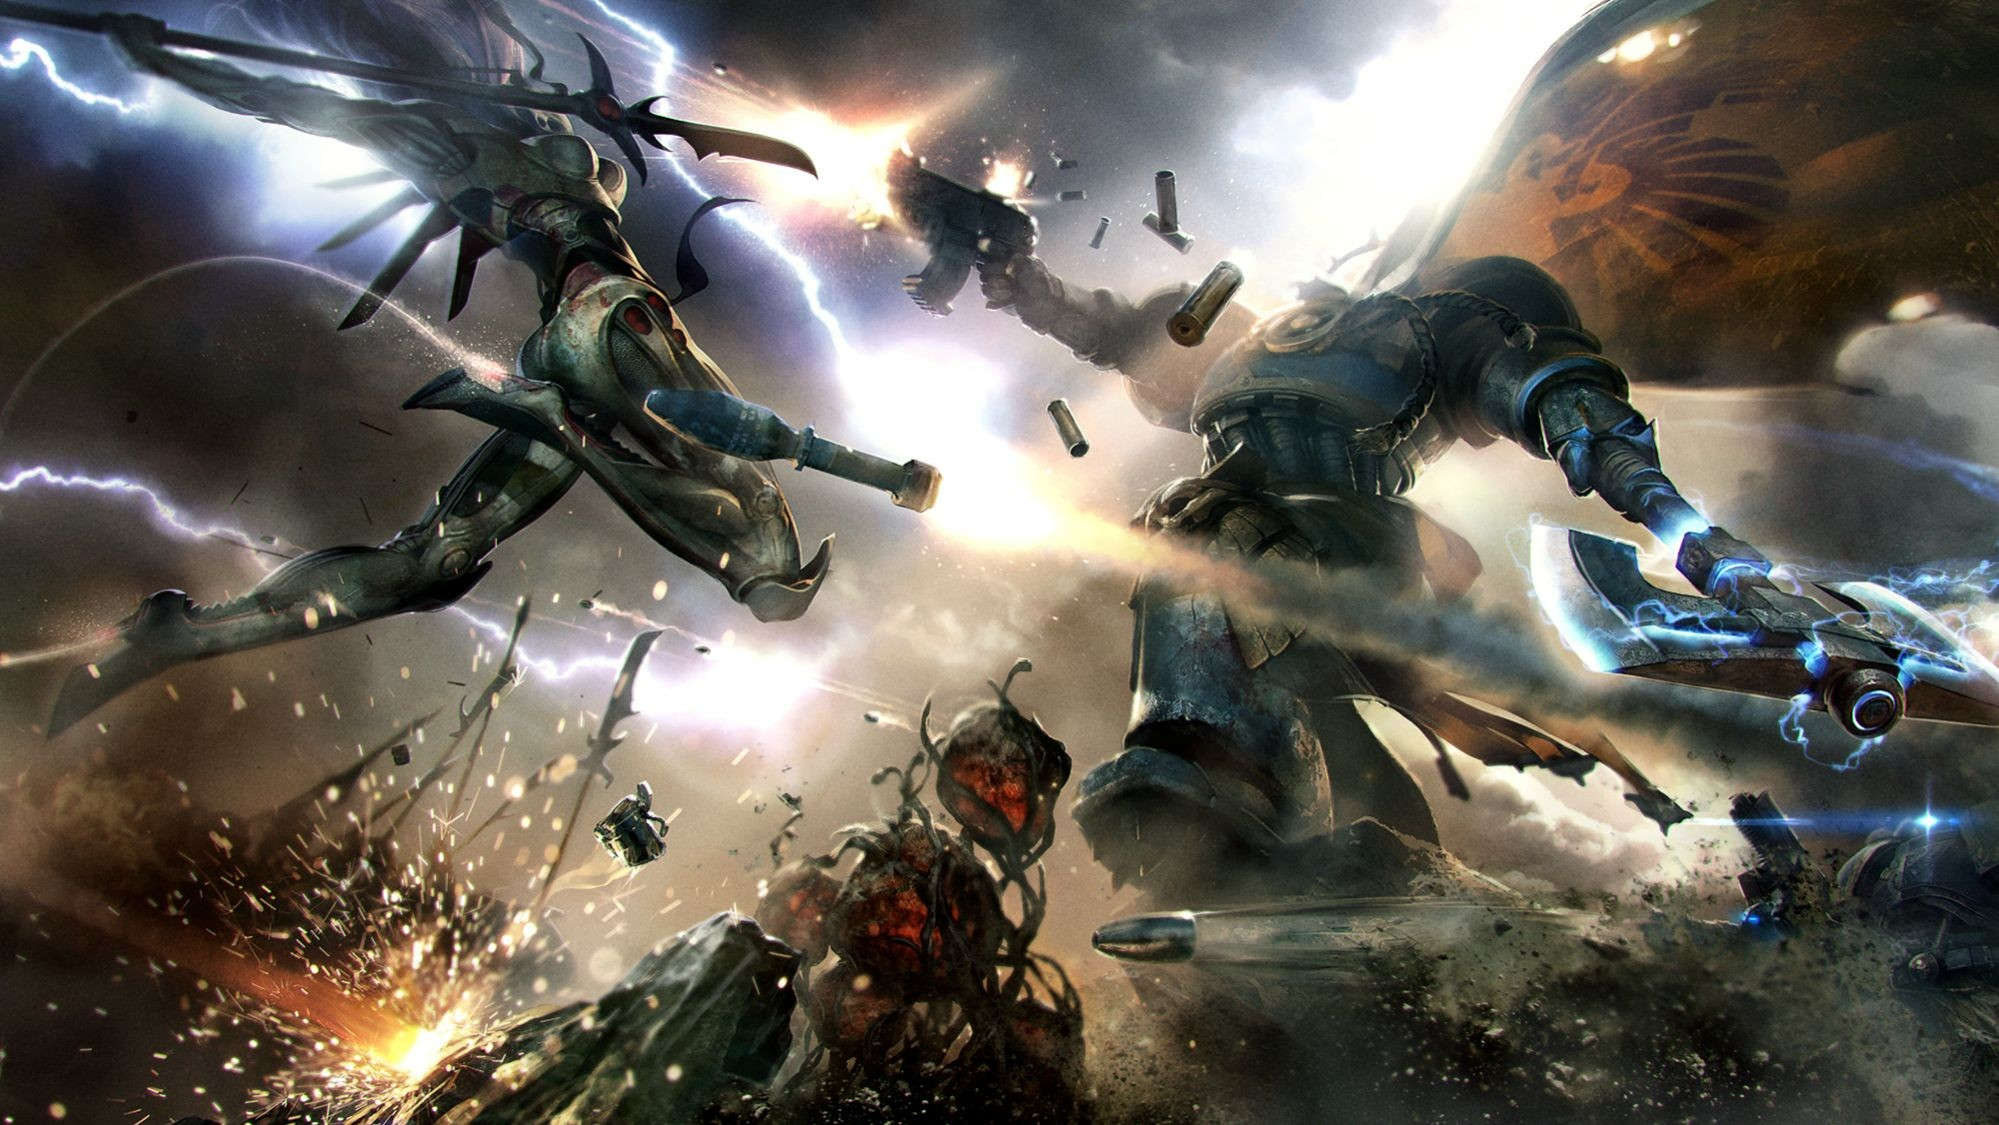 Warhammer 40k Wallpapers Now with Extra Heresy